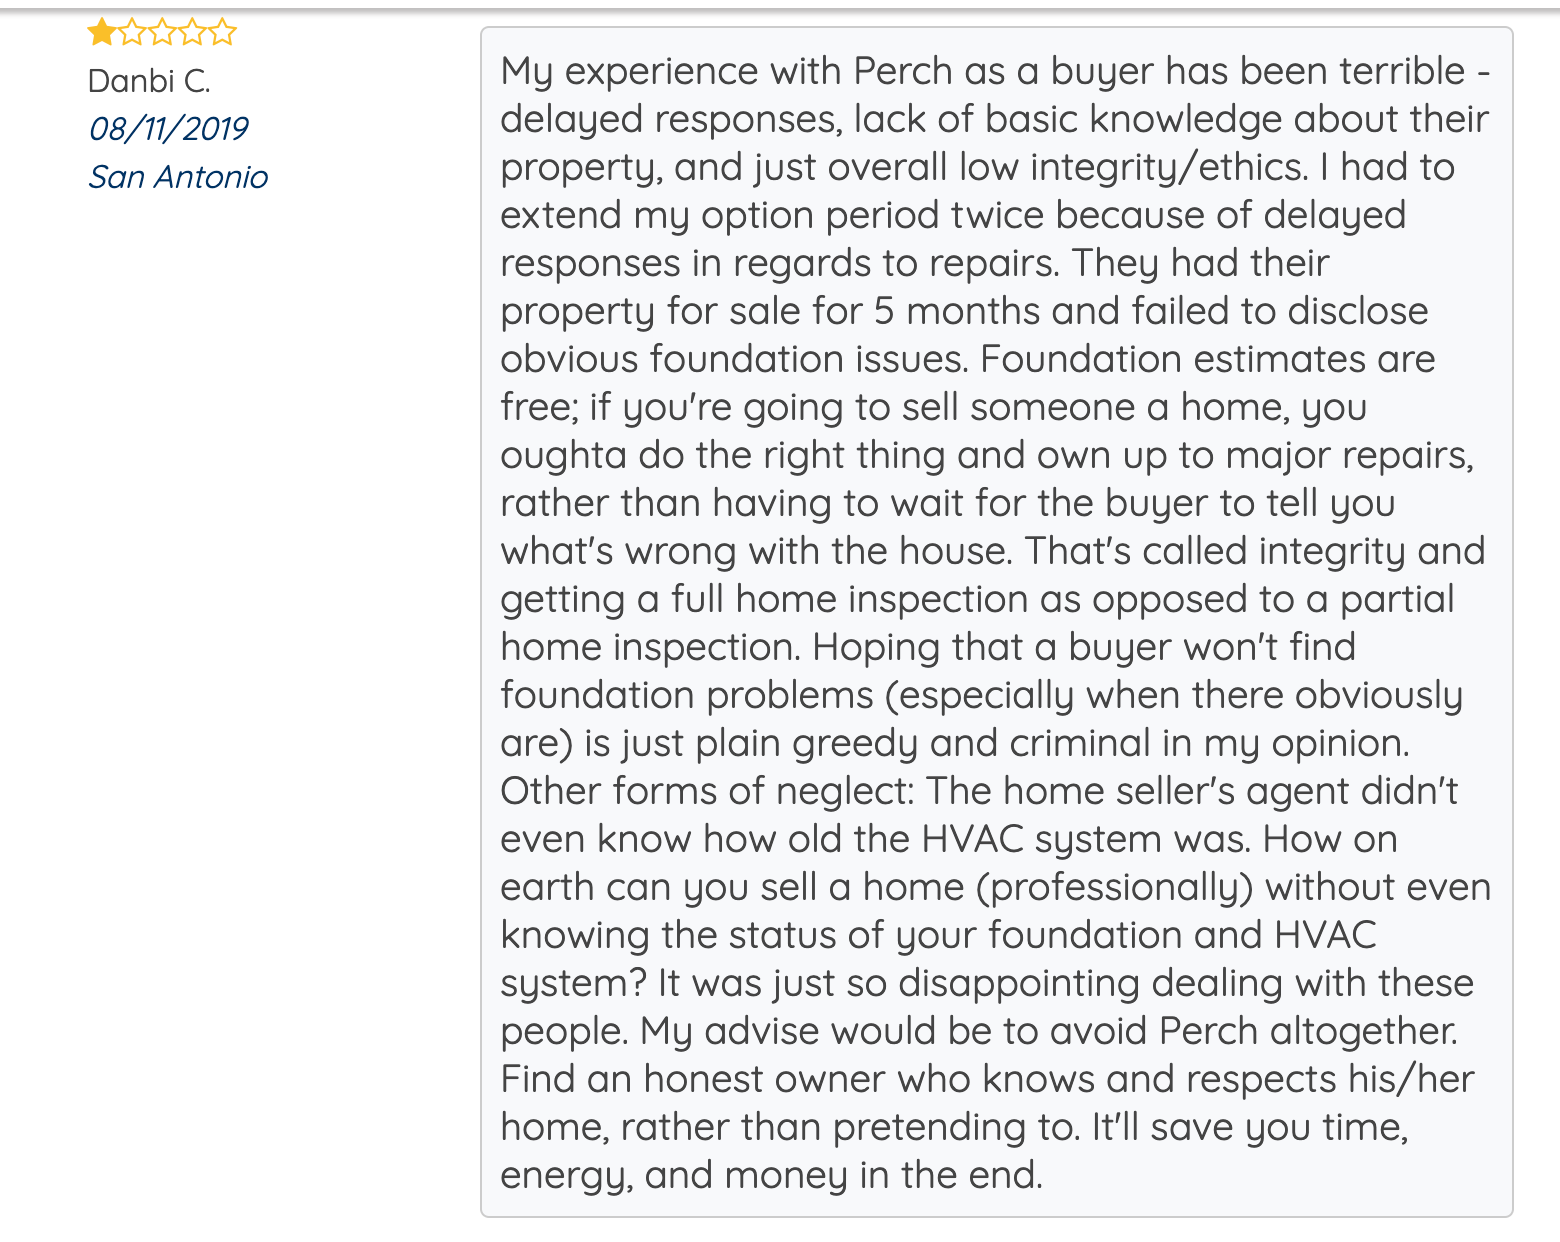 orchard real estate review